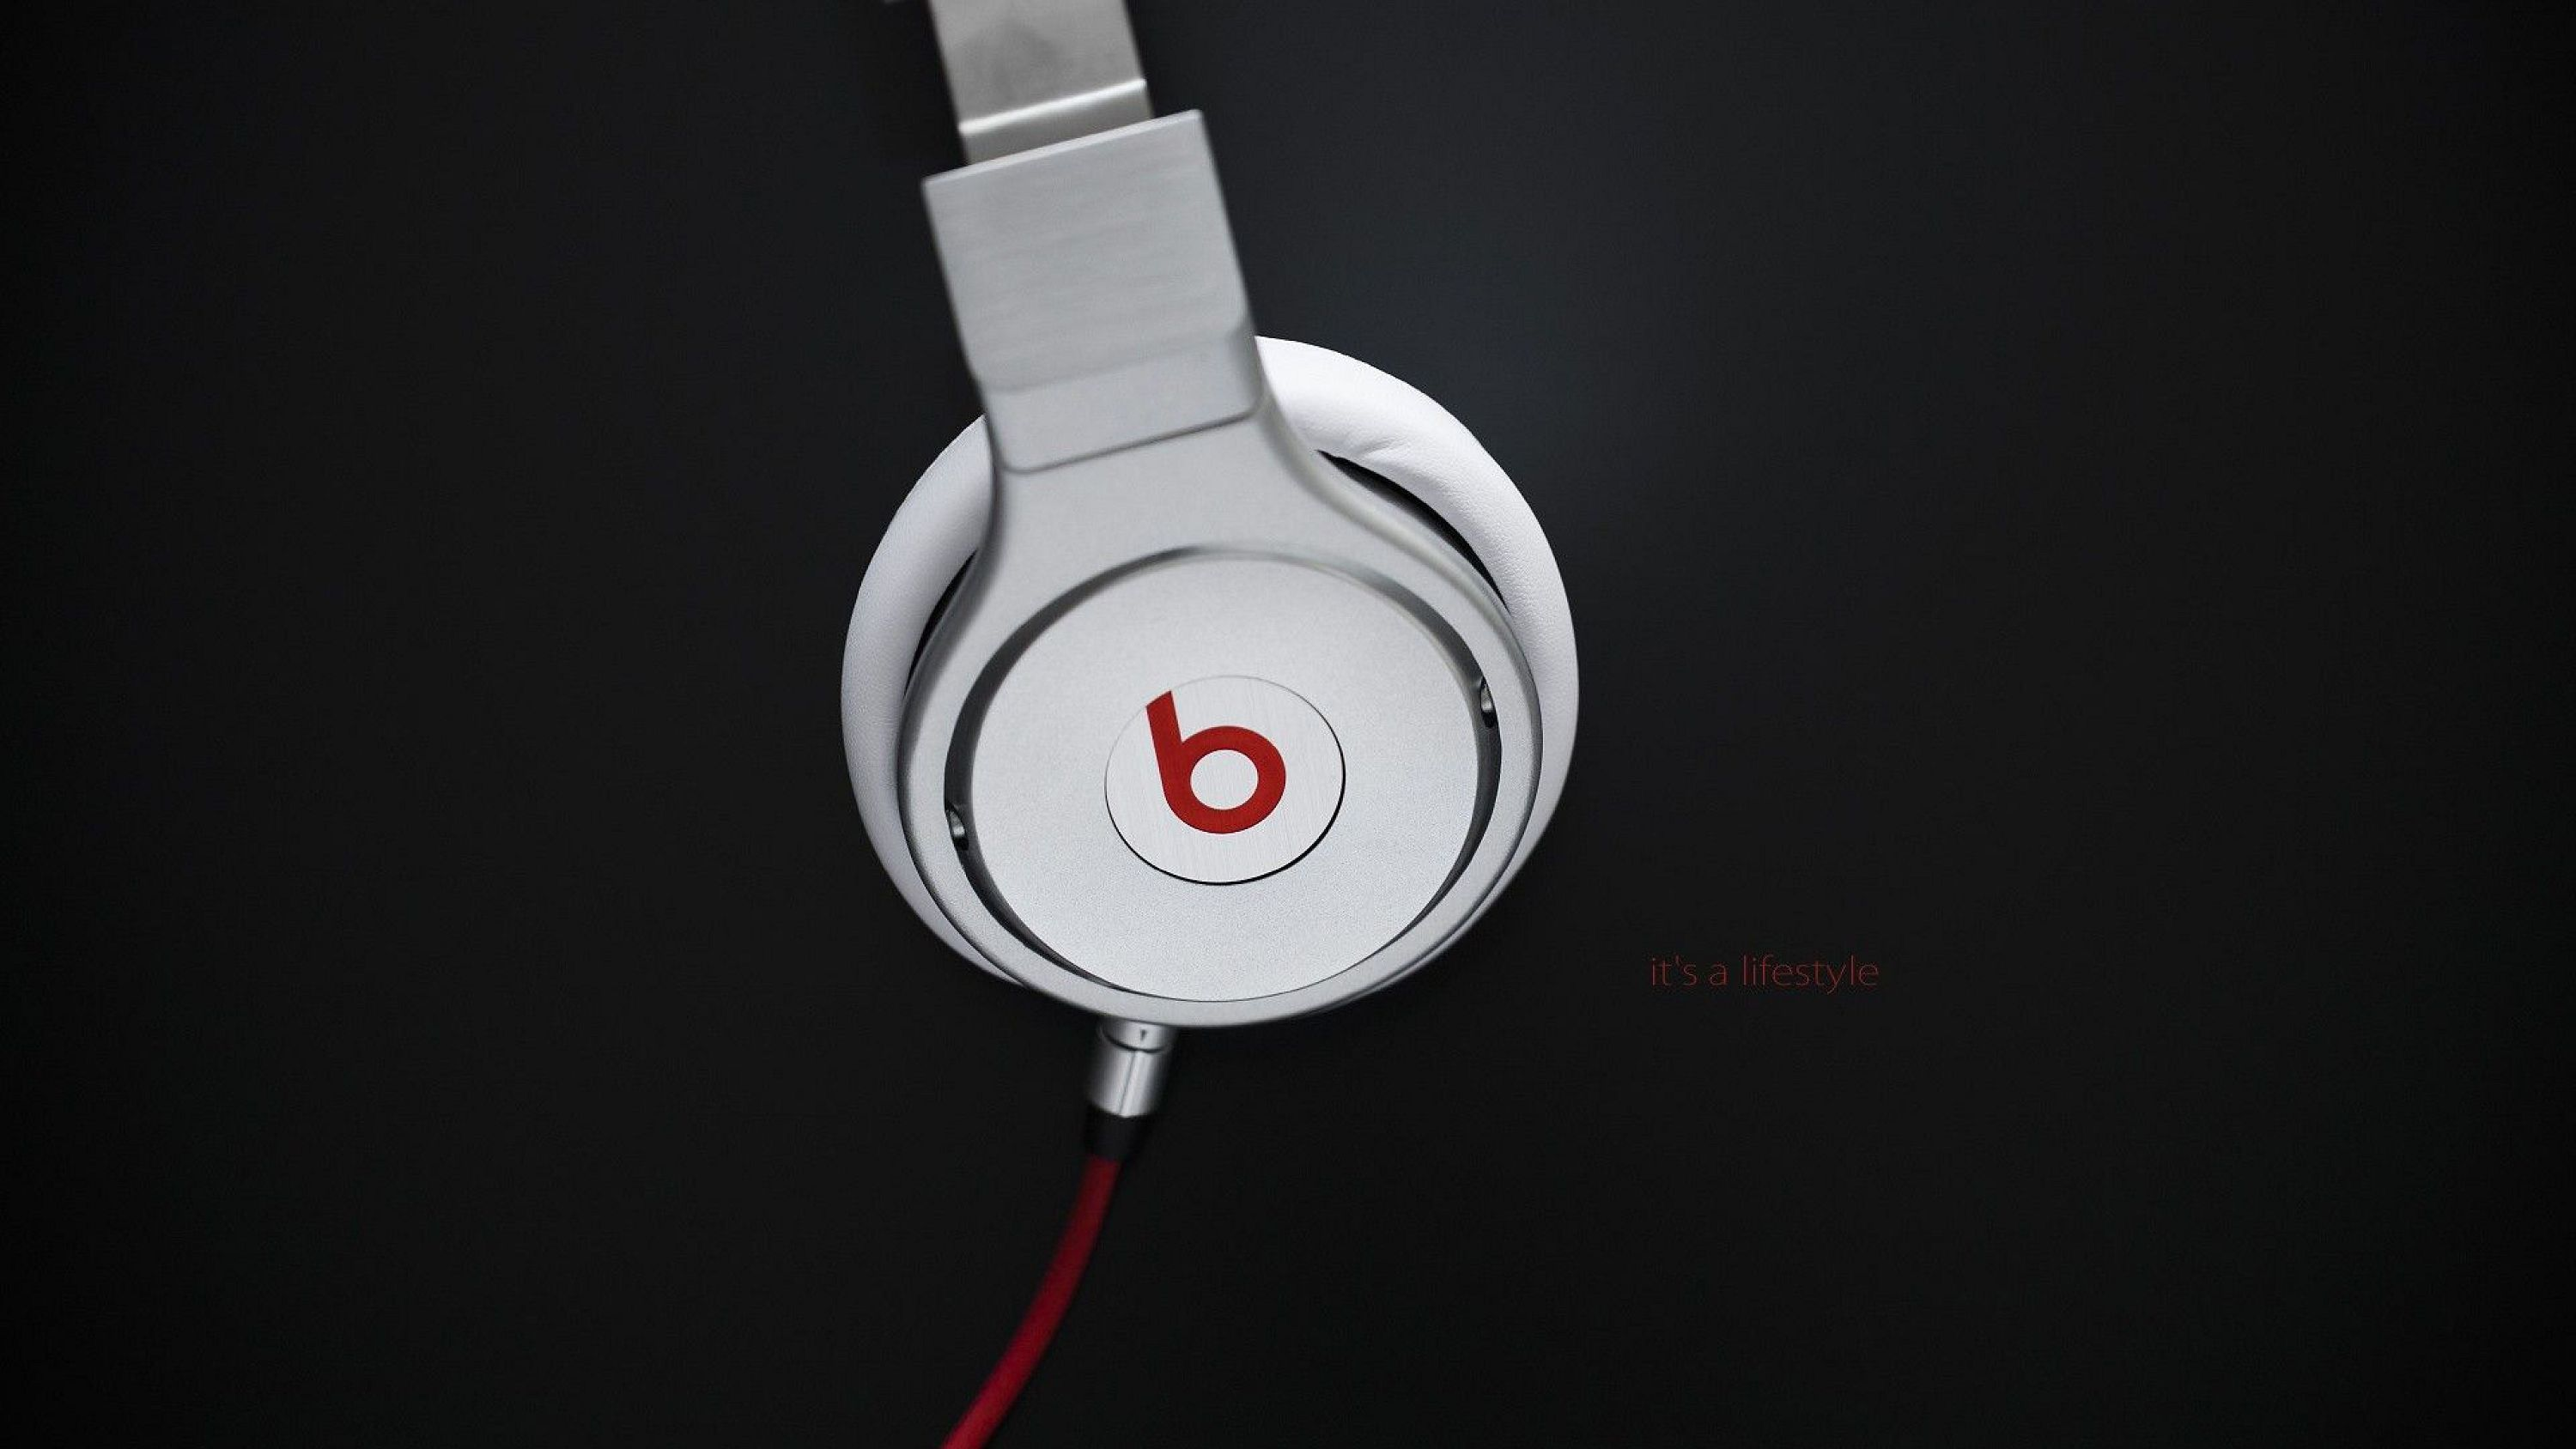 Beats By Dre HD Desktop